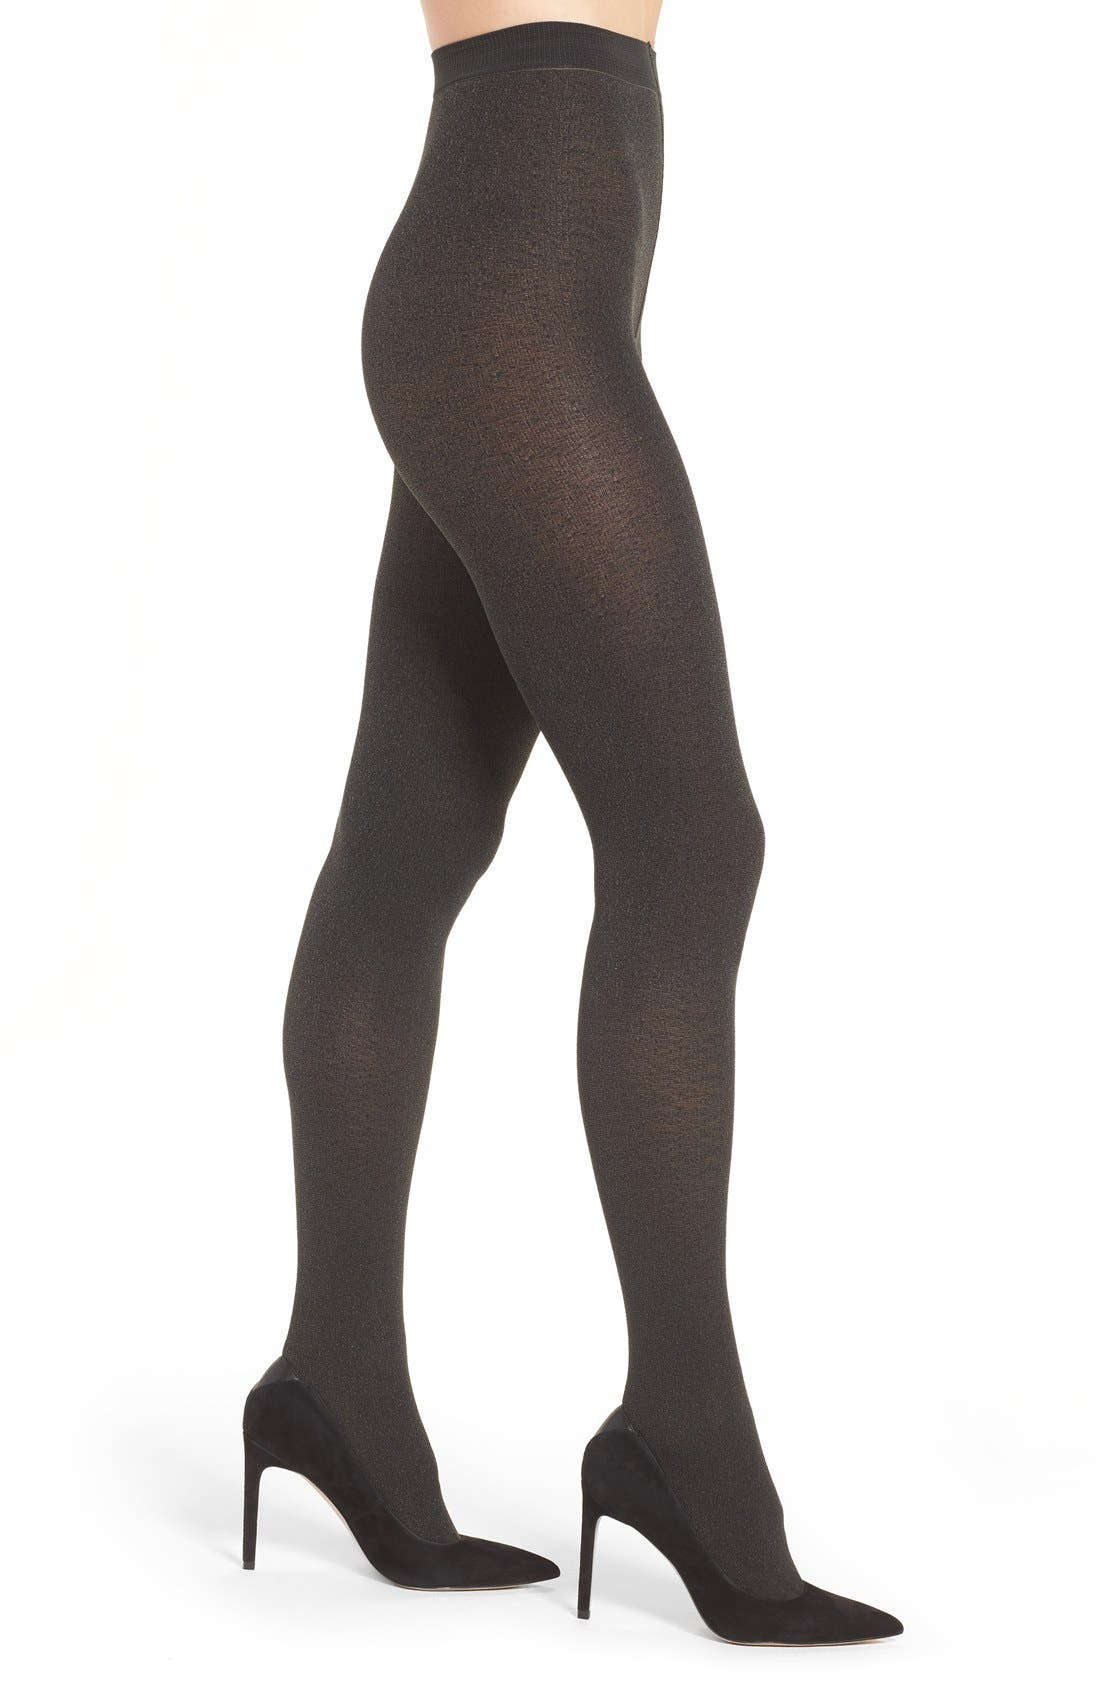 Main Image - Oroblu Gladys Tights